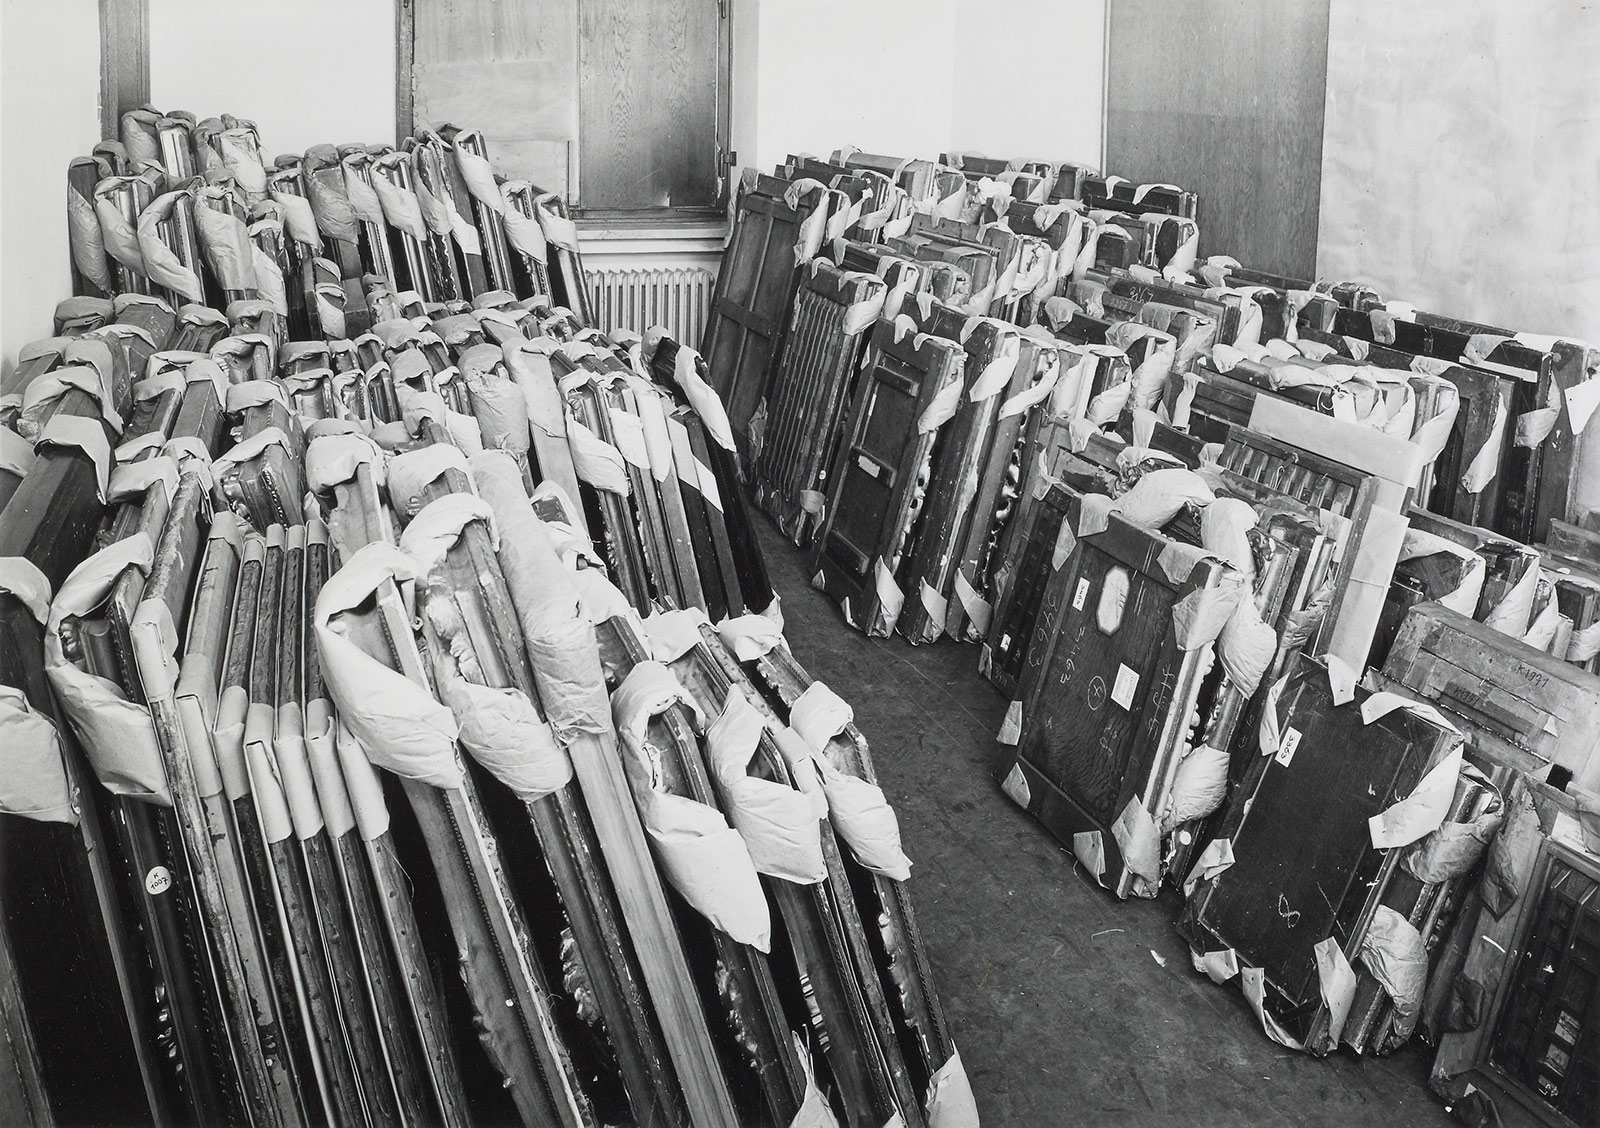 A black and white photograph of approximately 100 framed objects stacked against the walls of an otherwise empty room.